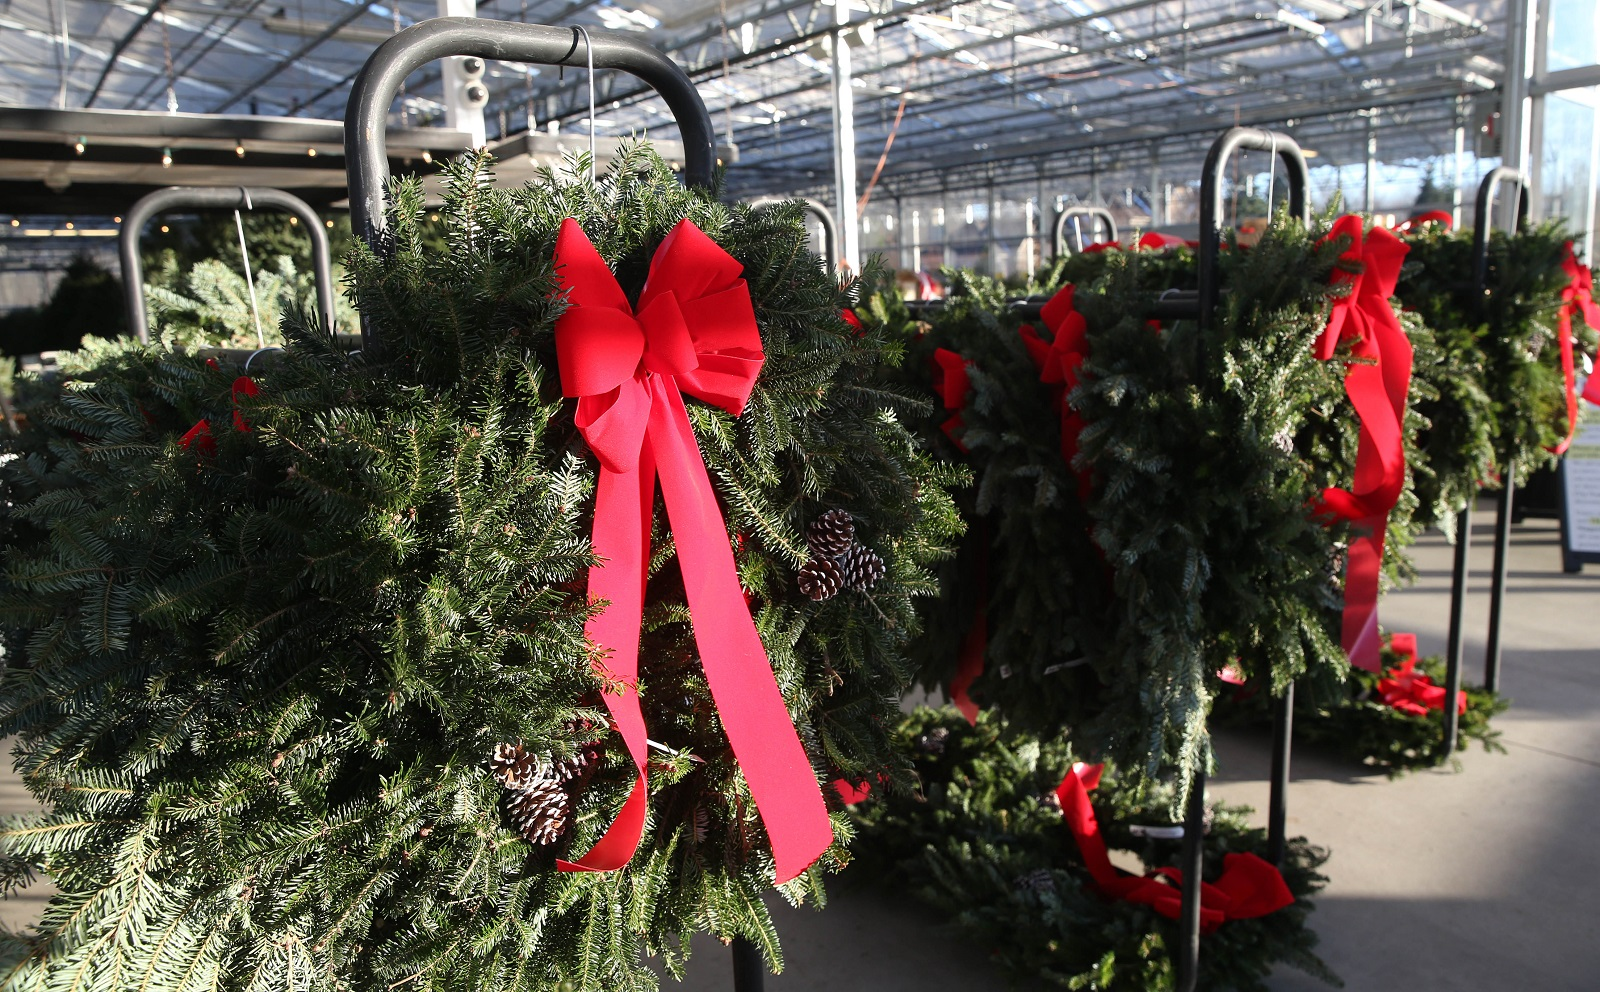 Christmas wreaths made from pine branches are among the gifts you can buy from Niagara Produce. (Sharon Cantillon/Buffalo News)